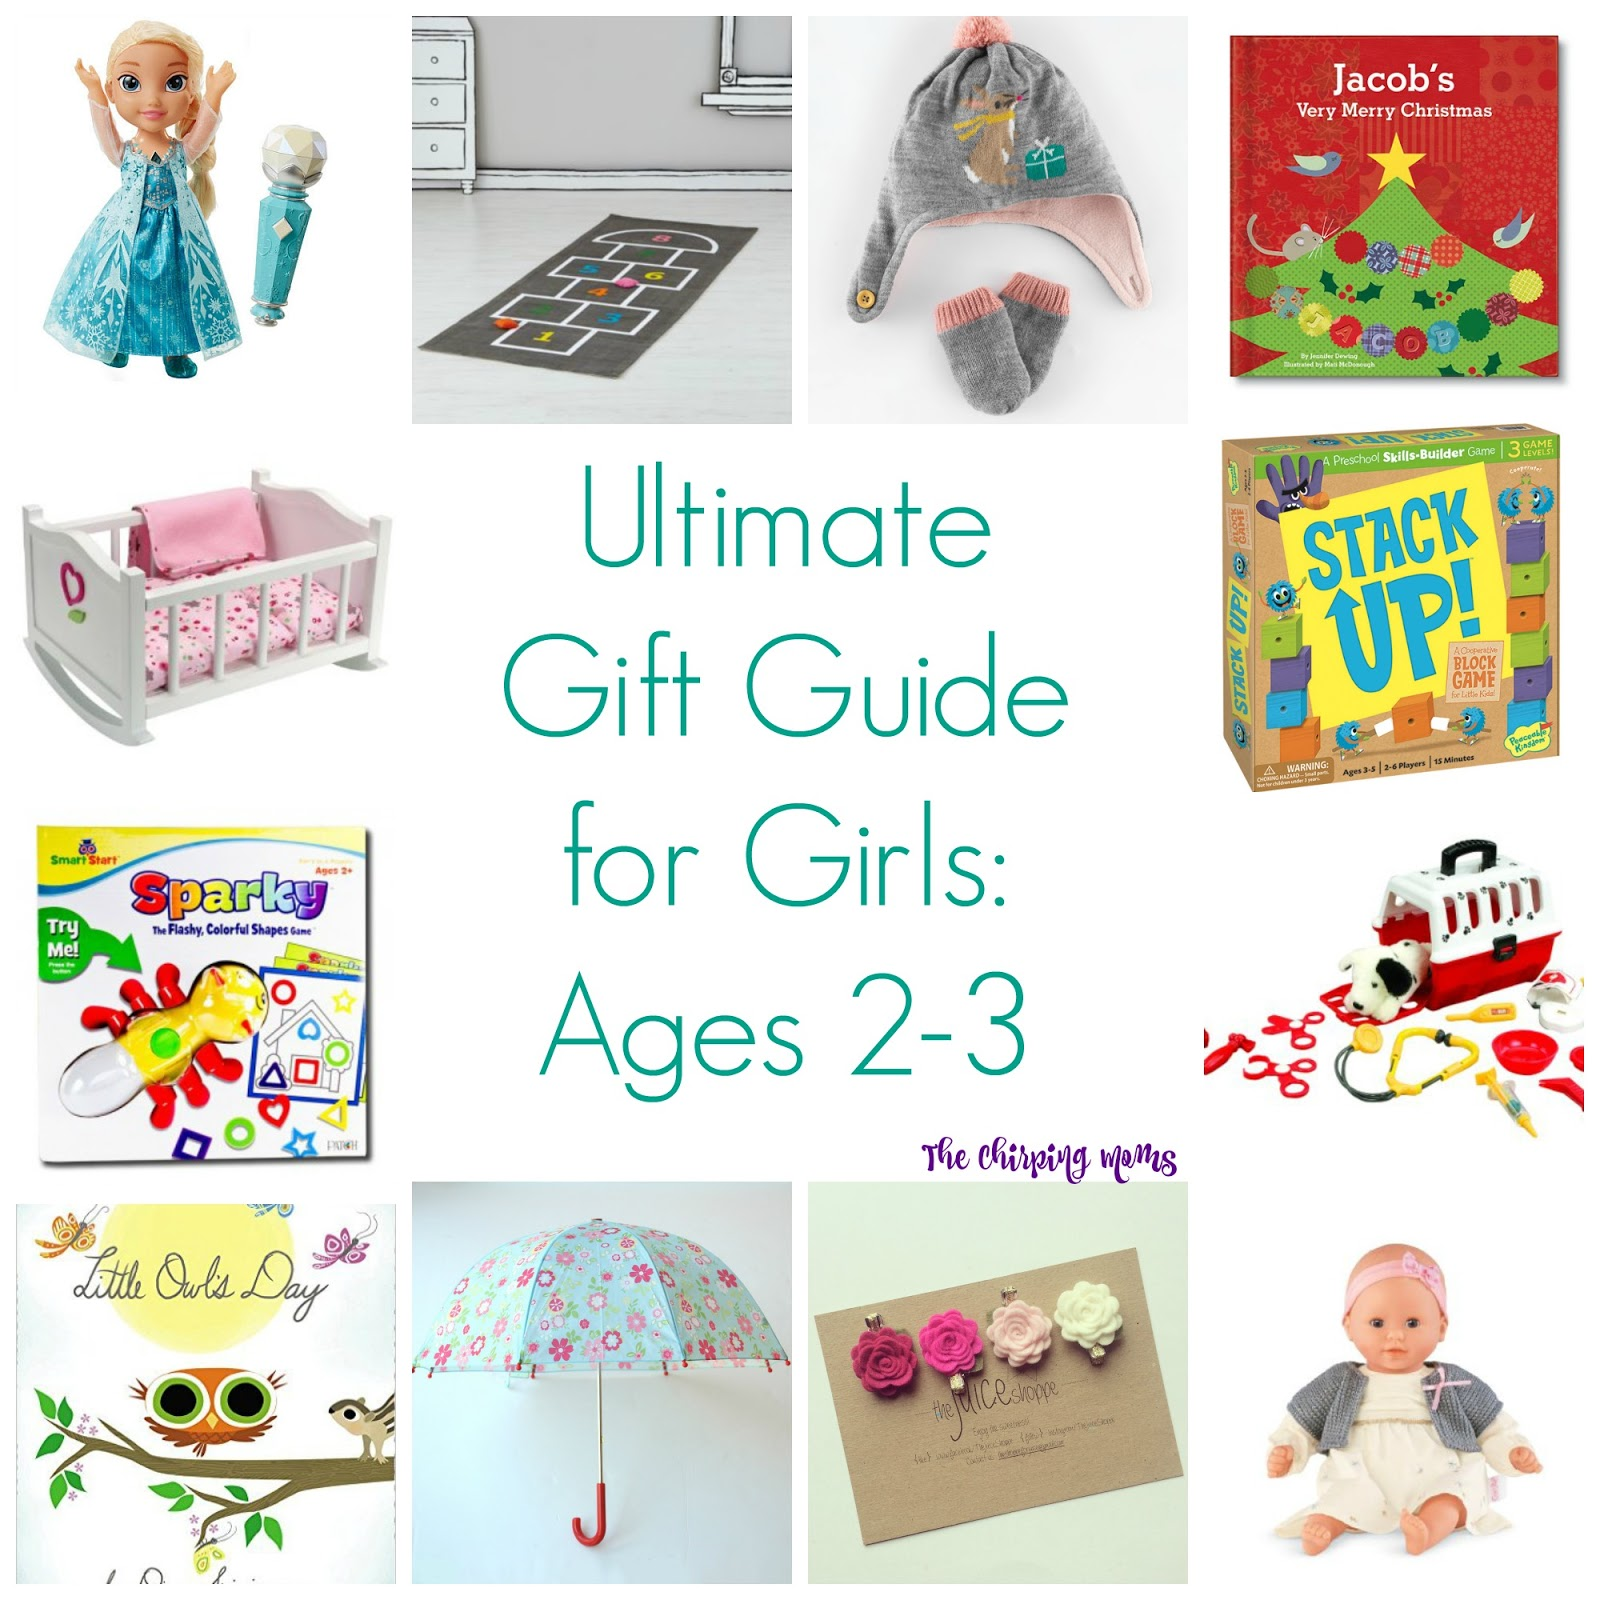 Gifts For Architects The Ultimate Guide: Ultimate Gift Guide For Girls, Ages 2-3